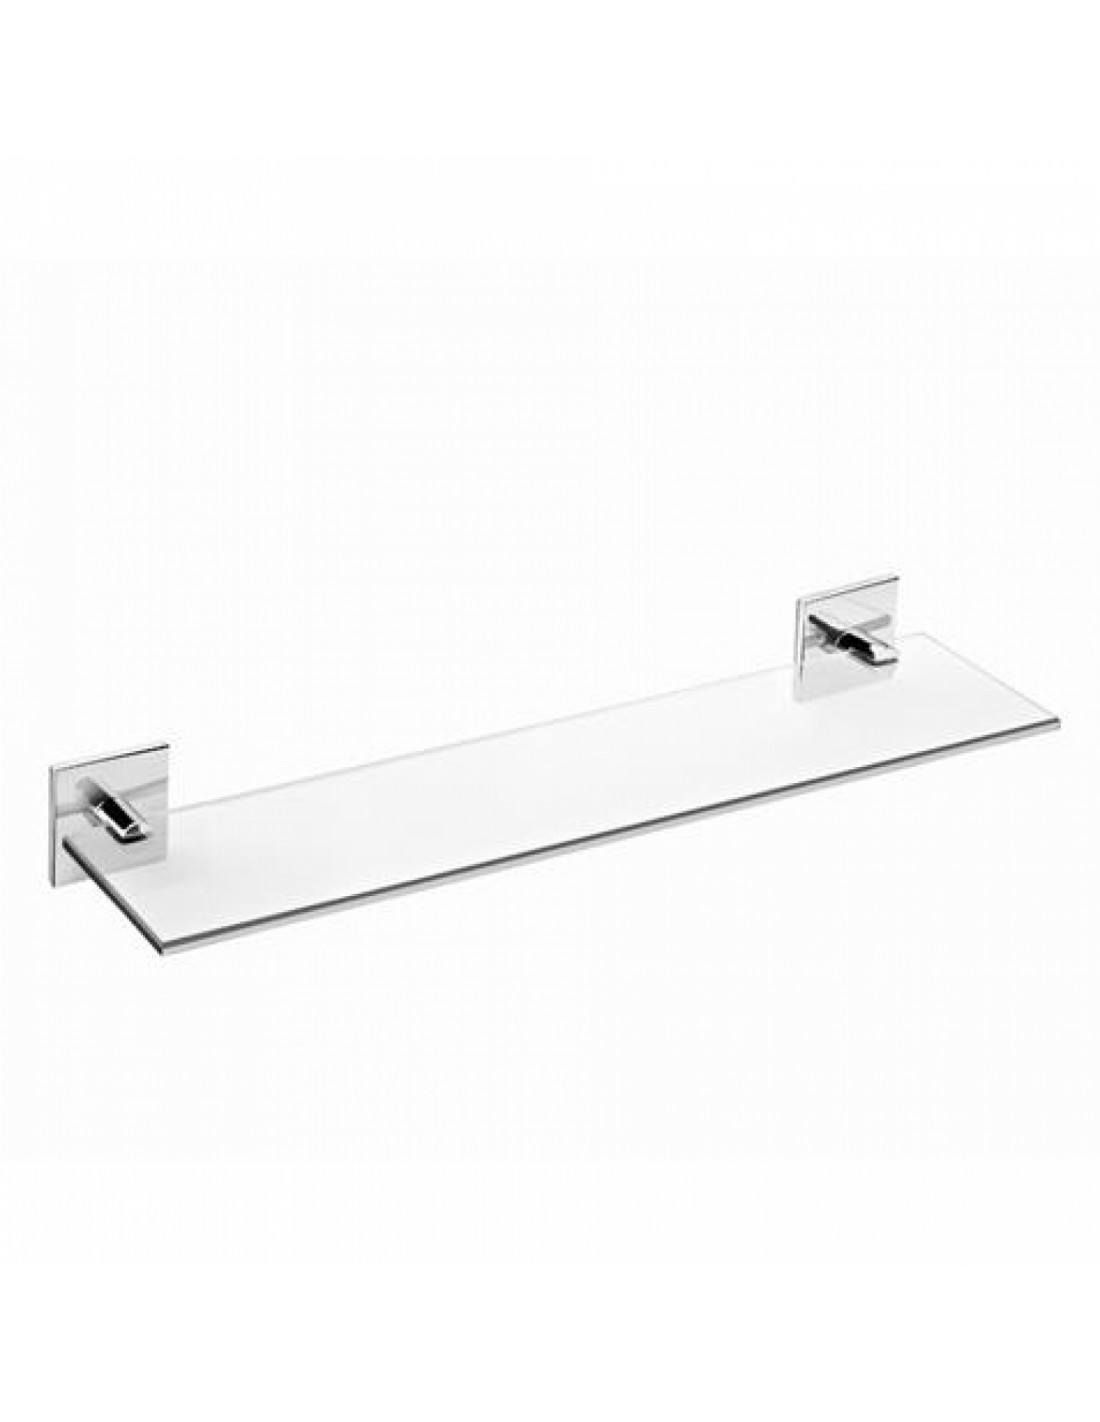 Tablette Salle De Bain En Verre 40 Cm Coller Duo Square